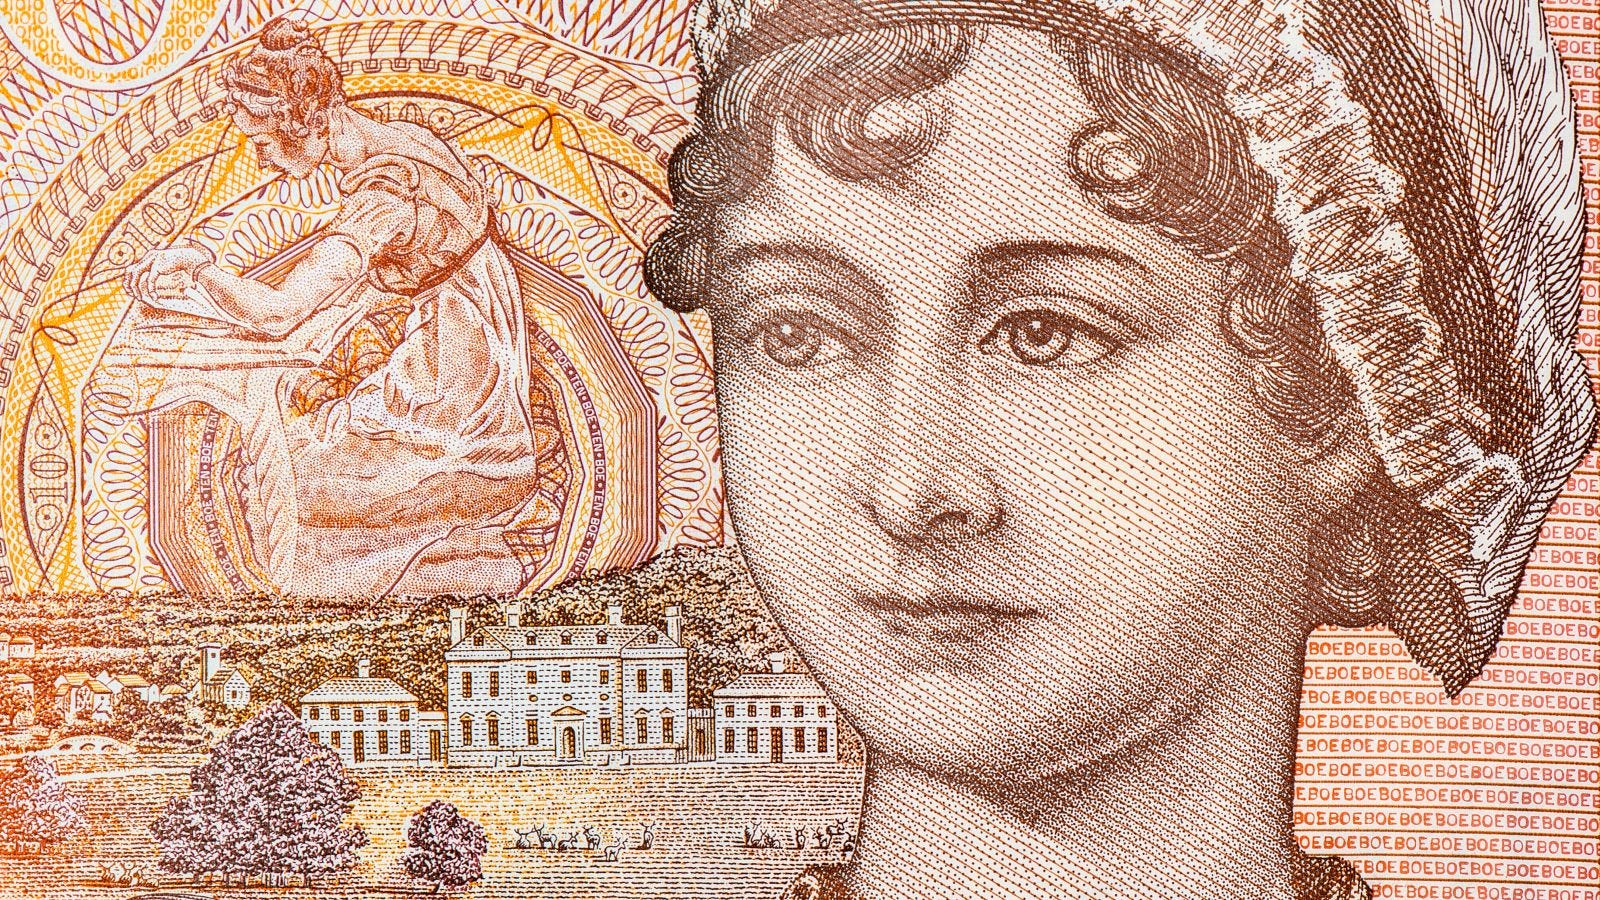 an old paper banknote showing an illustration of Jane Austen